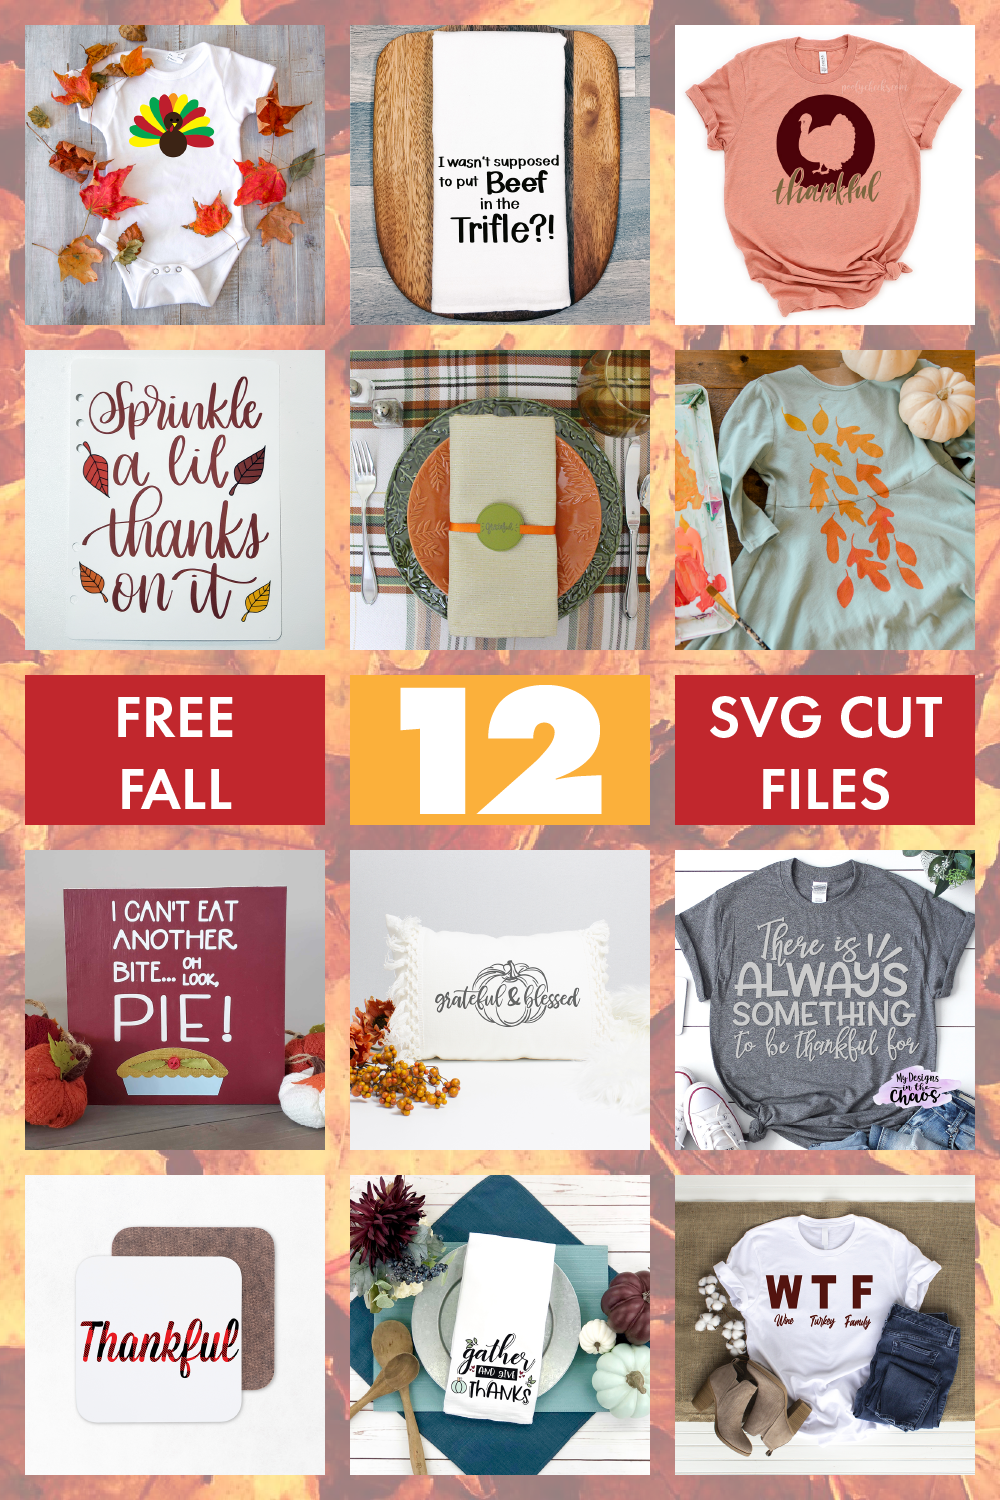 Free SVG cut files, Free fall cut files, free leaf SVG files, SVG templates for free